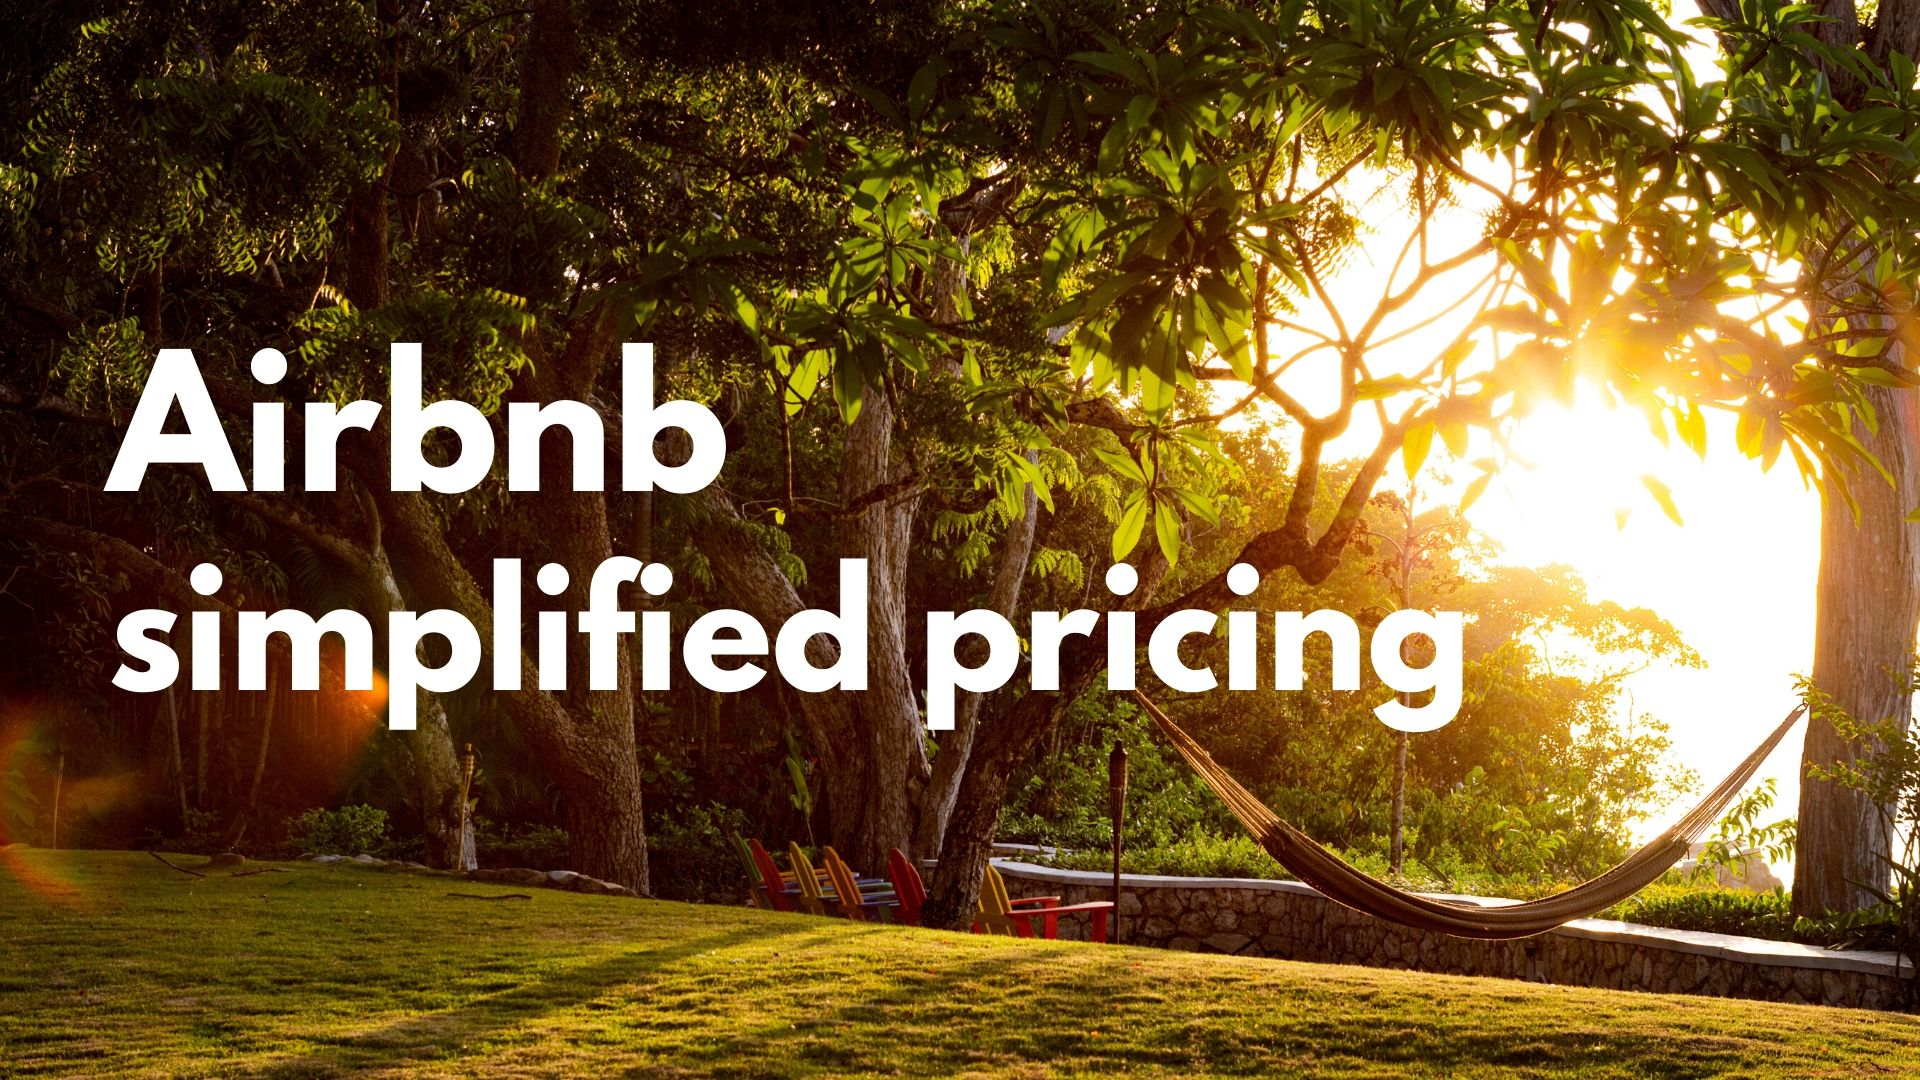 Airbnb simplified pricing